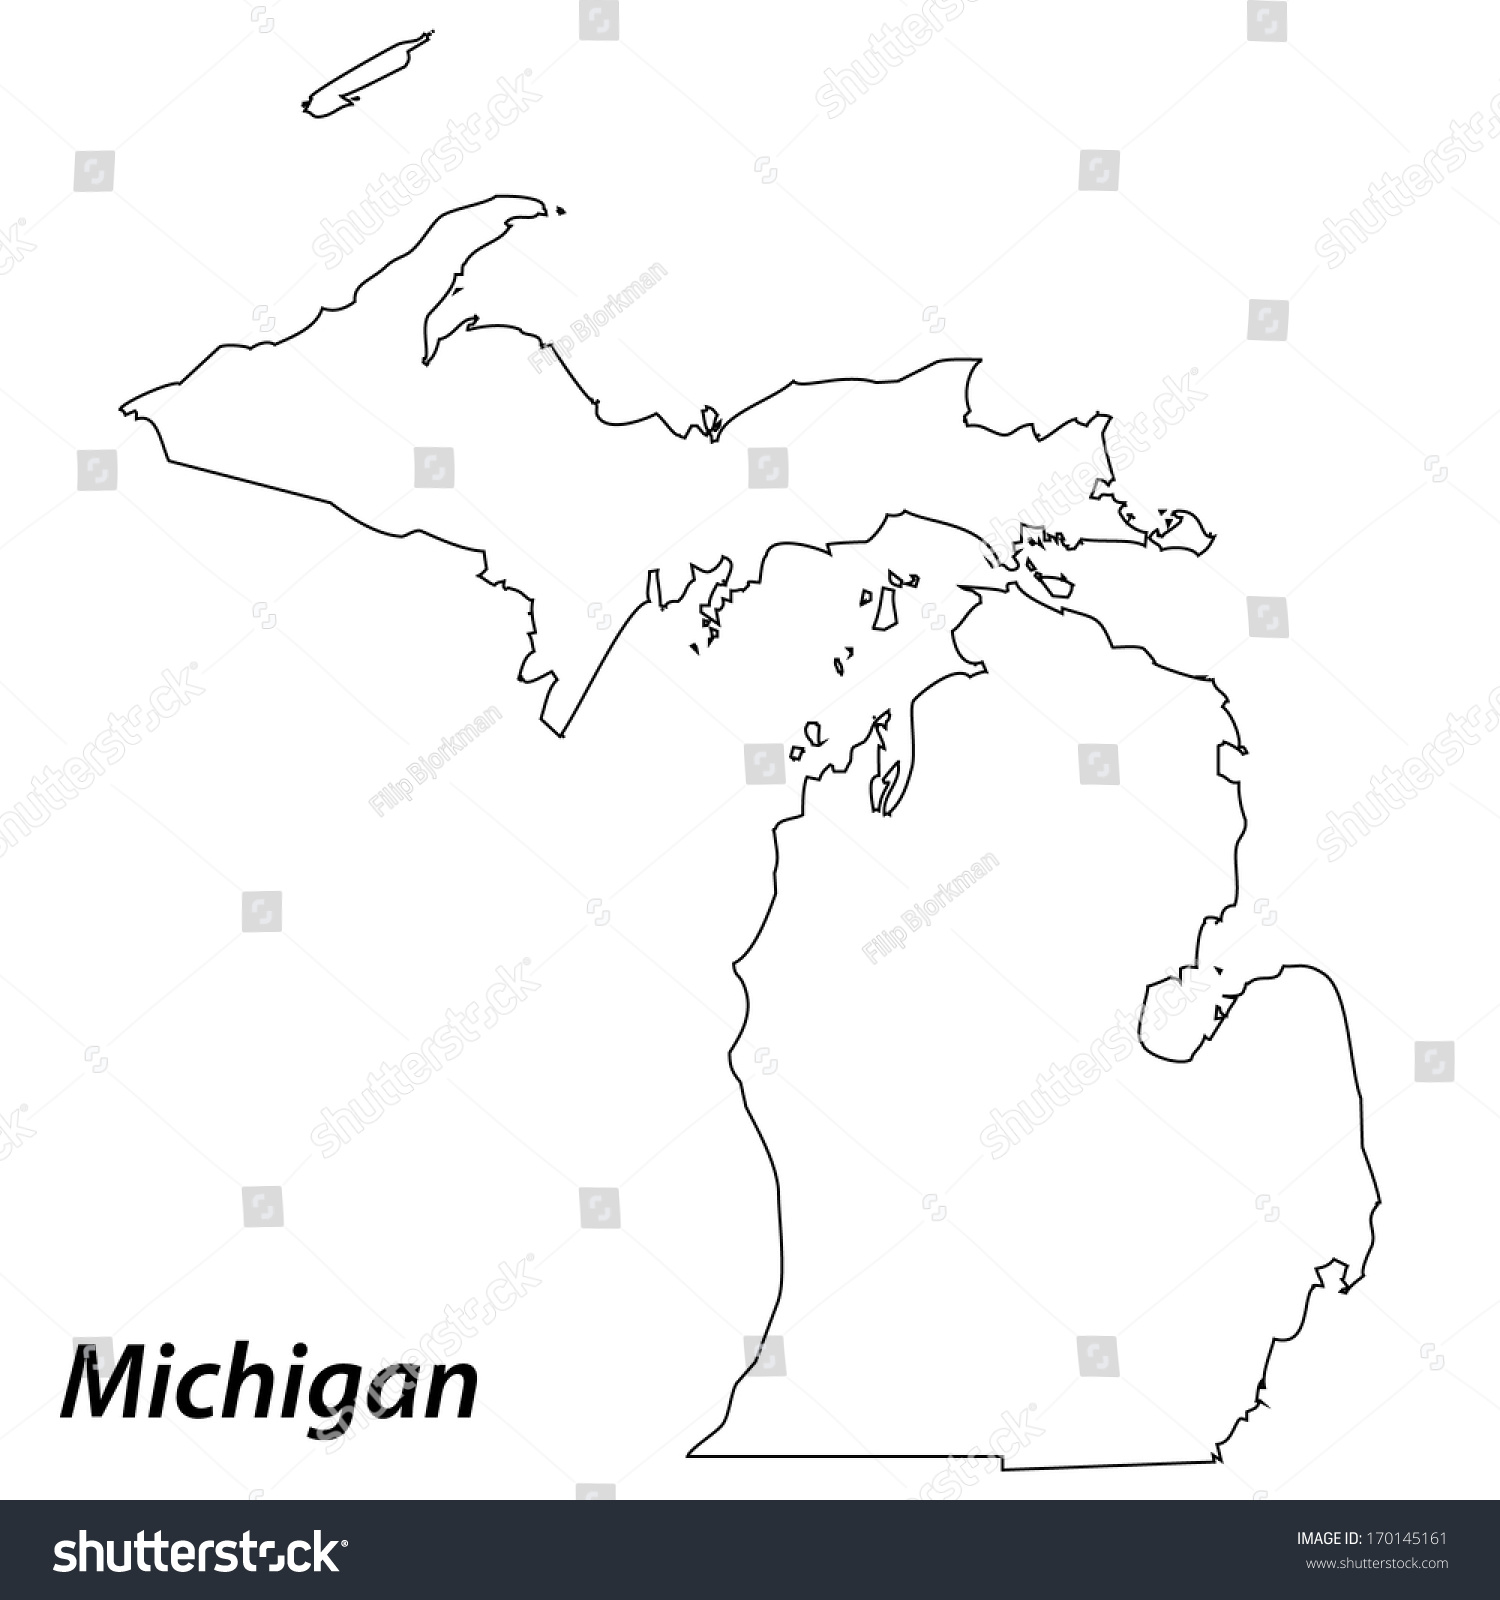 Map Of Michigan Cities And Towns Printable Map Of Michigan - Texas map outline with cities